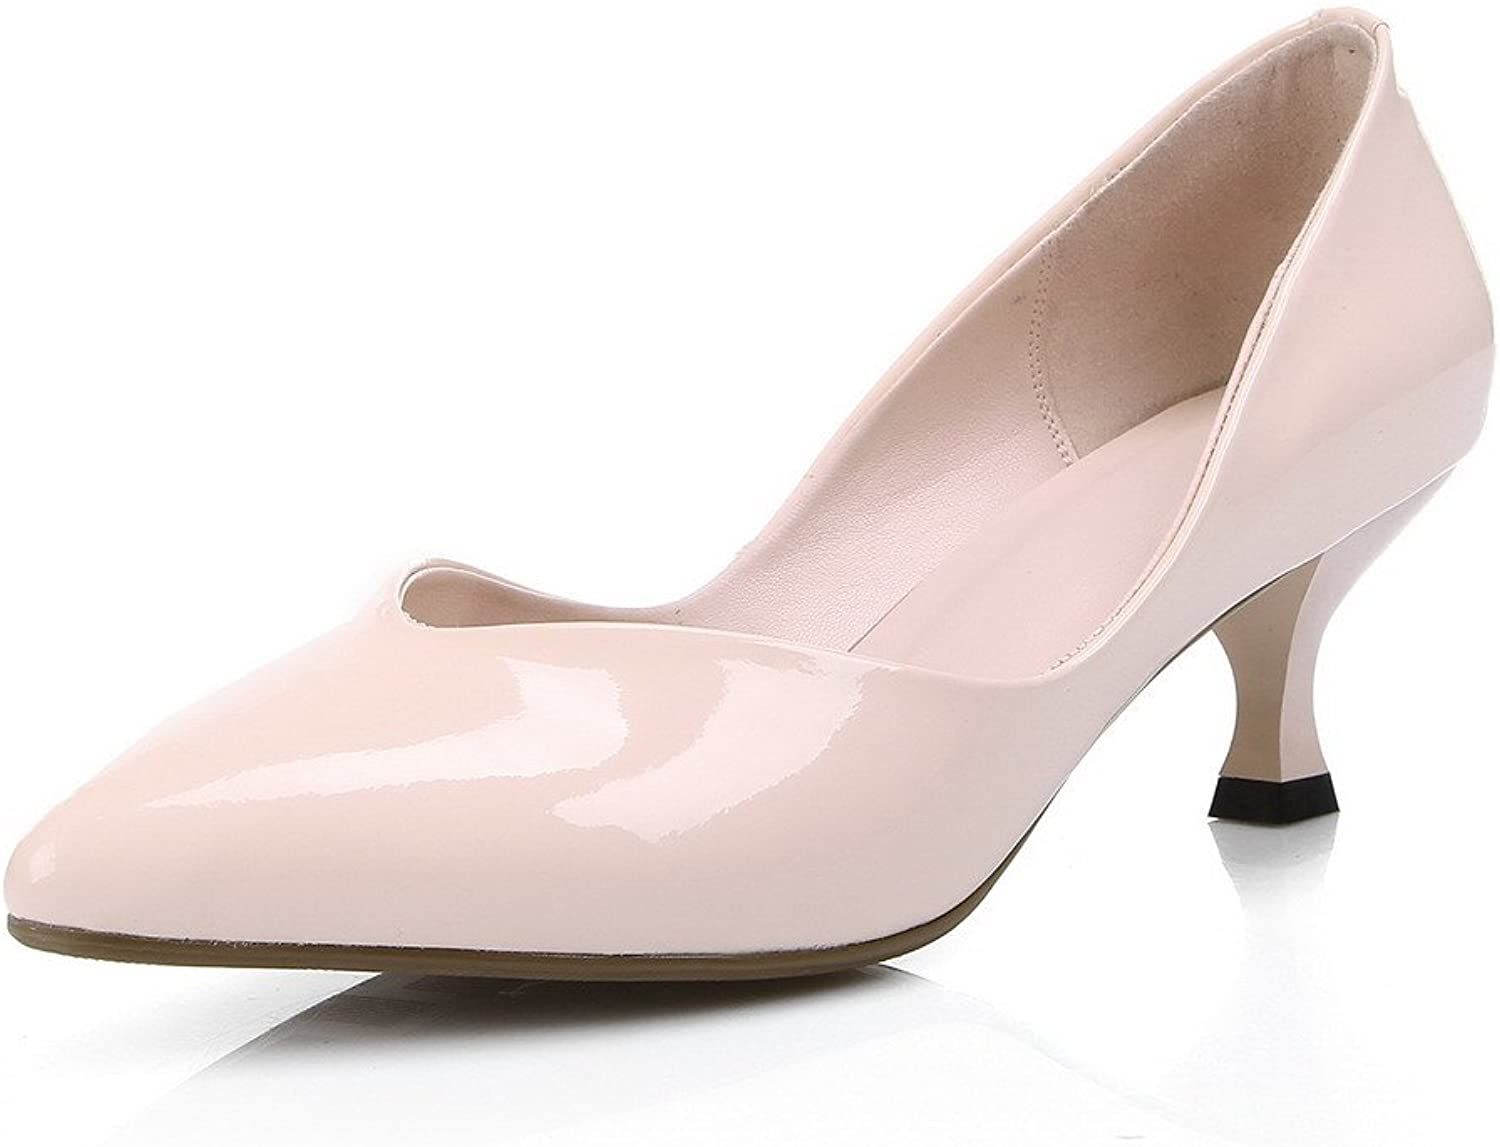 WeenFashion Women's Pull On Closed Pointed Toe Kitten Heels Solid Pumps shoes